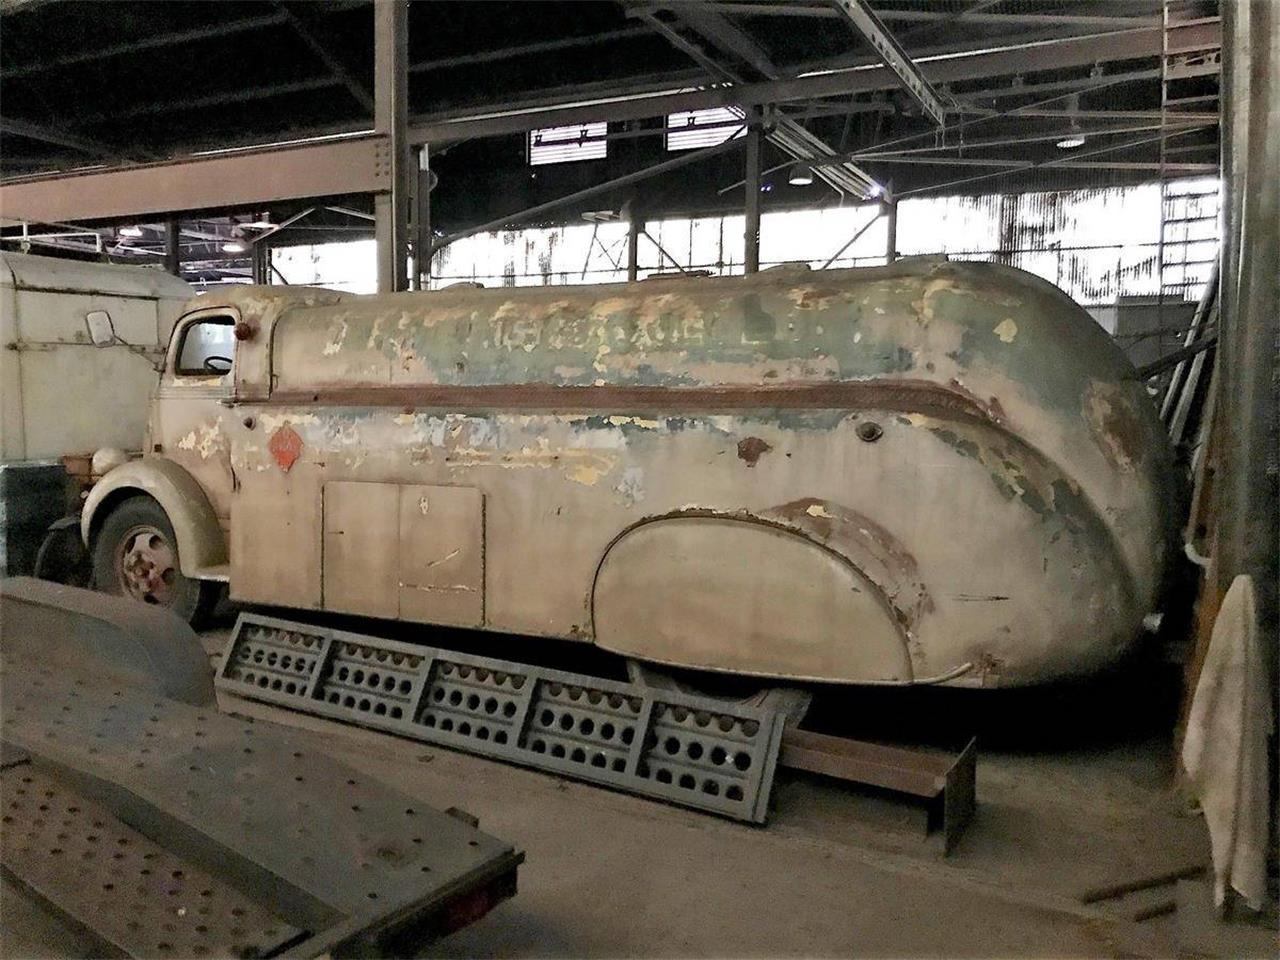 Large Picture of 1940 Ford COE located in Lynchburg Virginia - $65,000.00 - OWPB